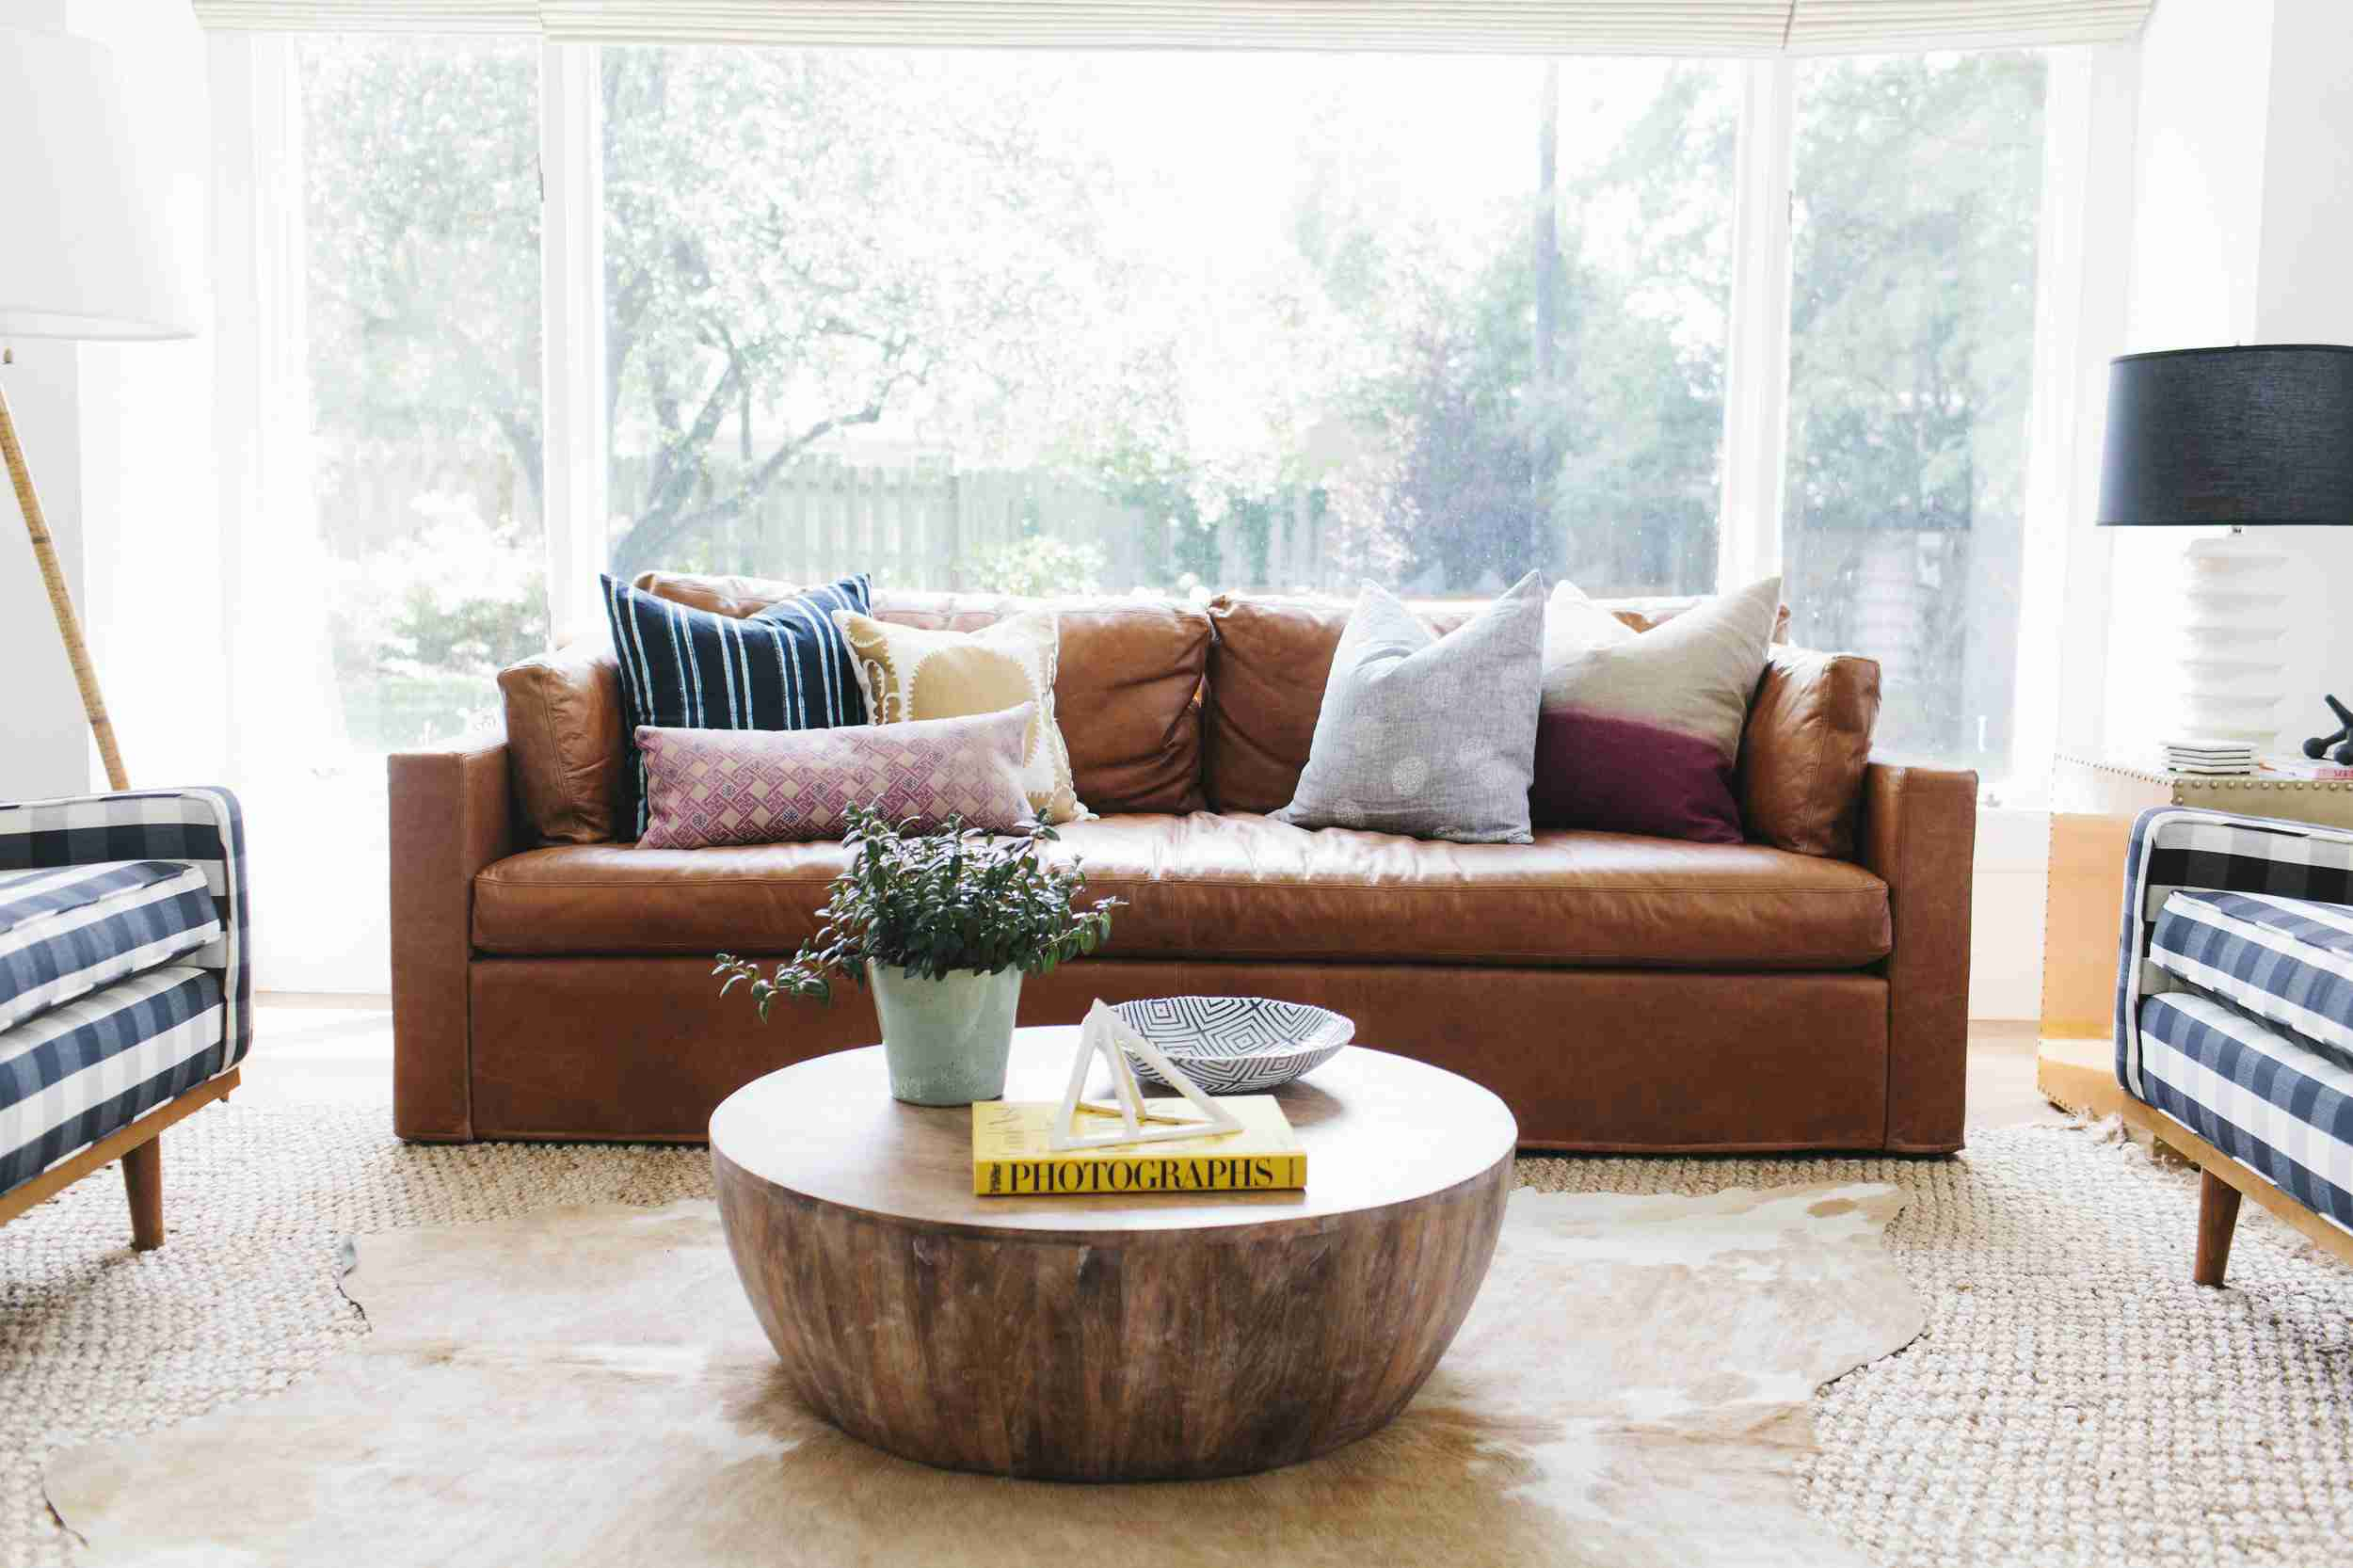 Living Room Trend - Layered Rugs